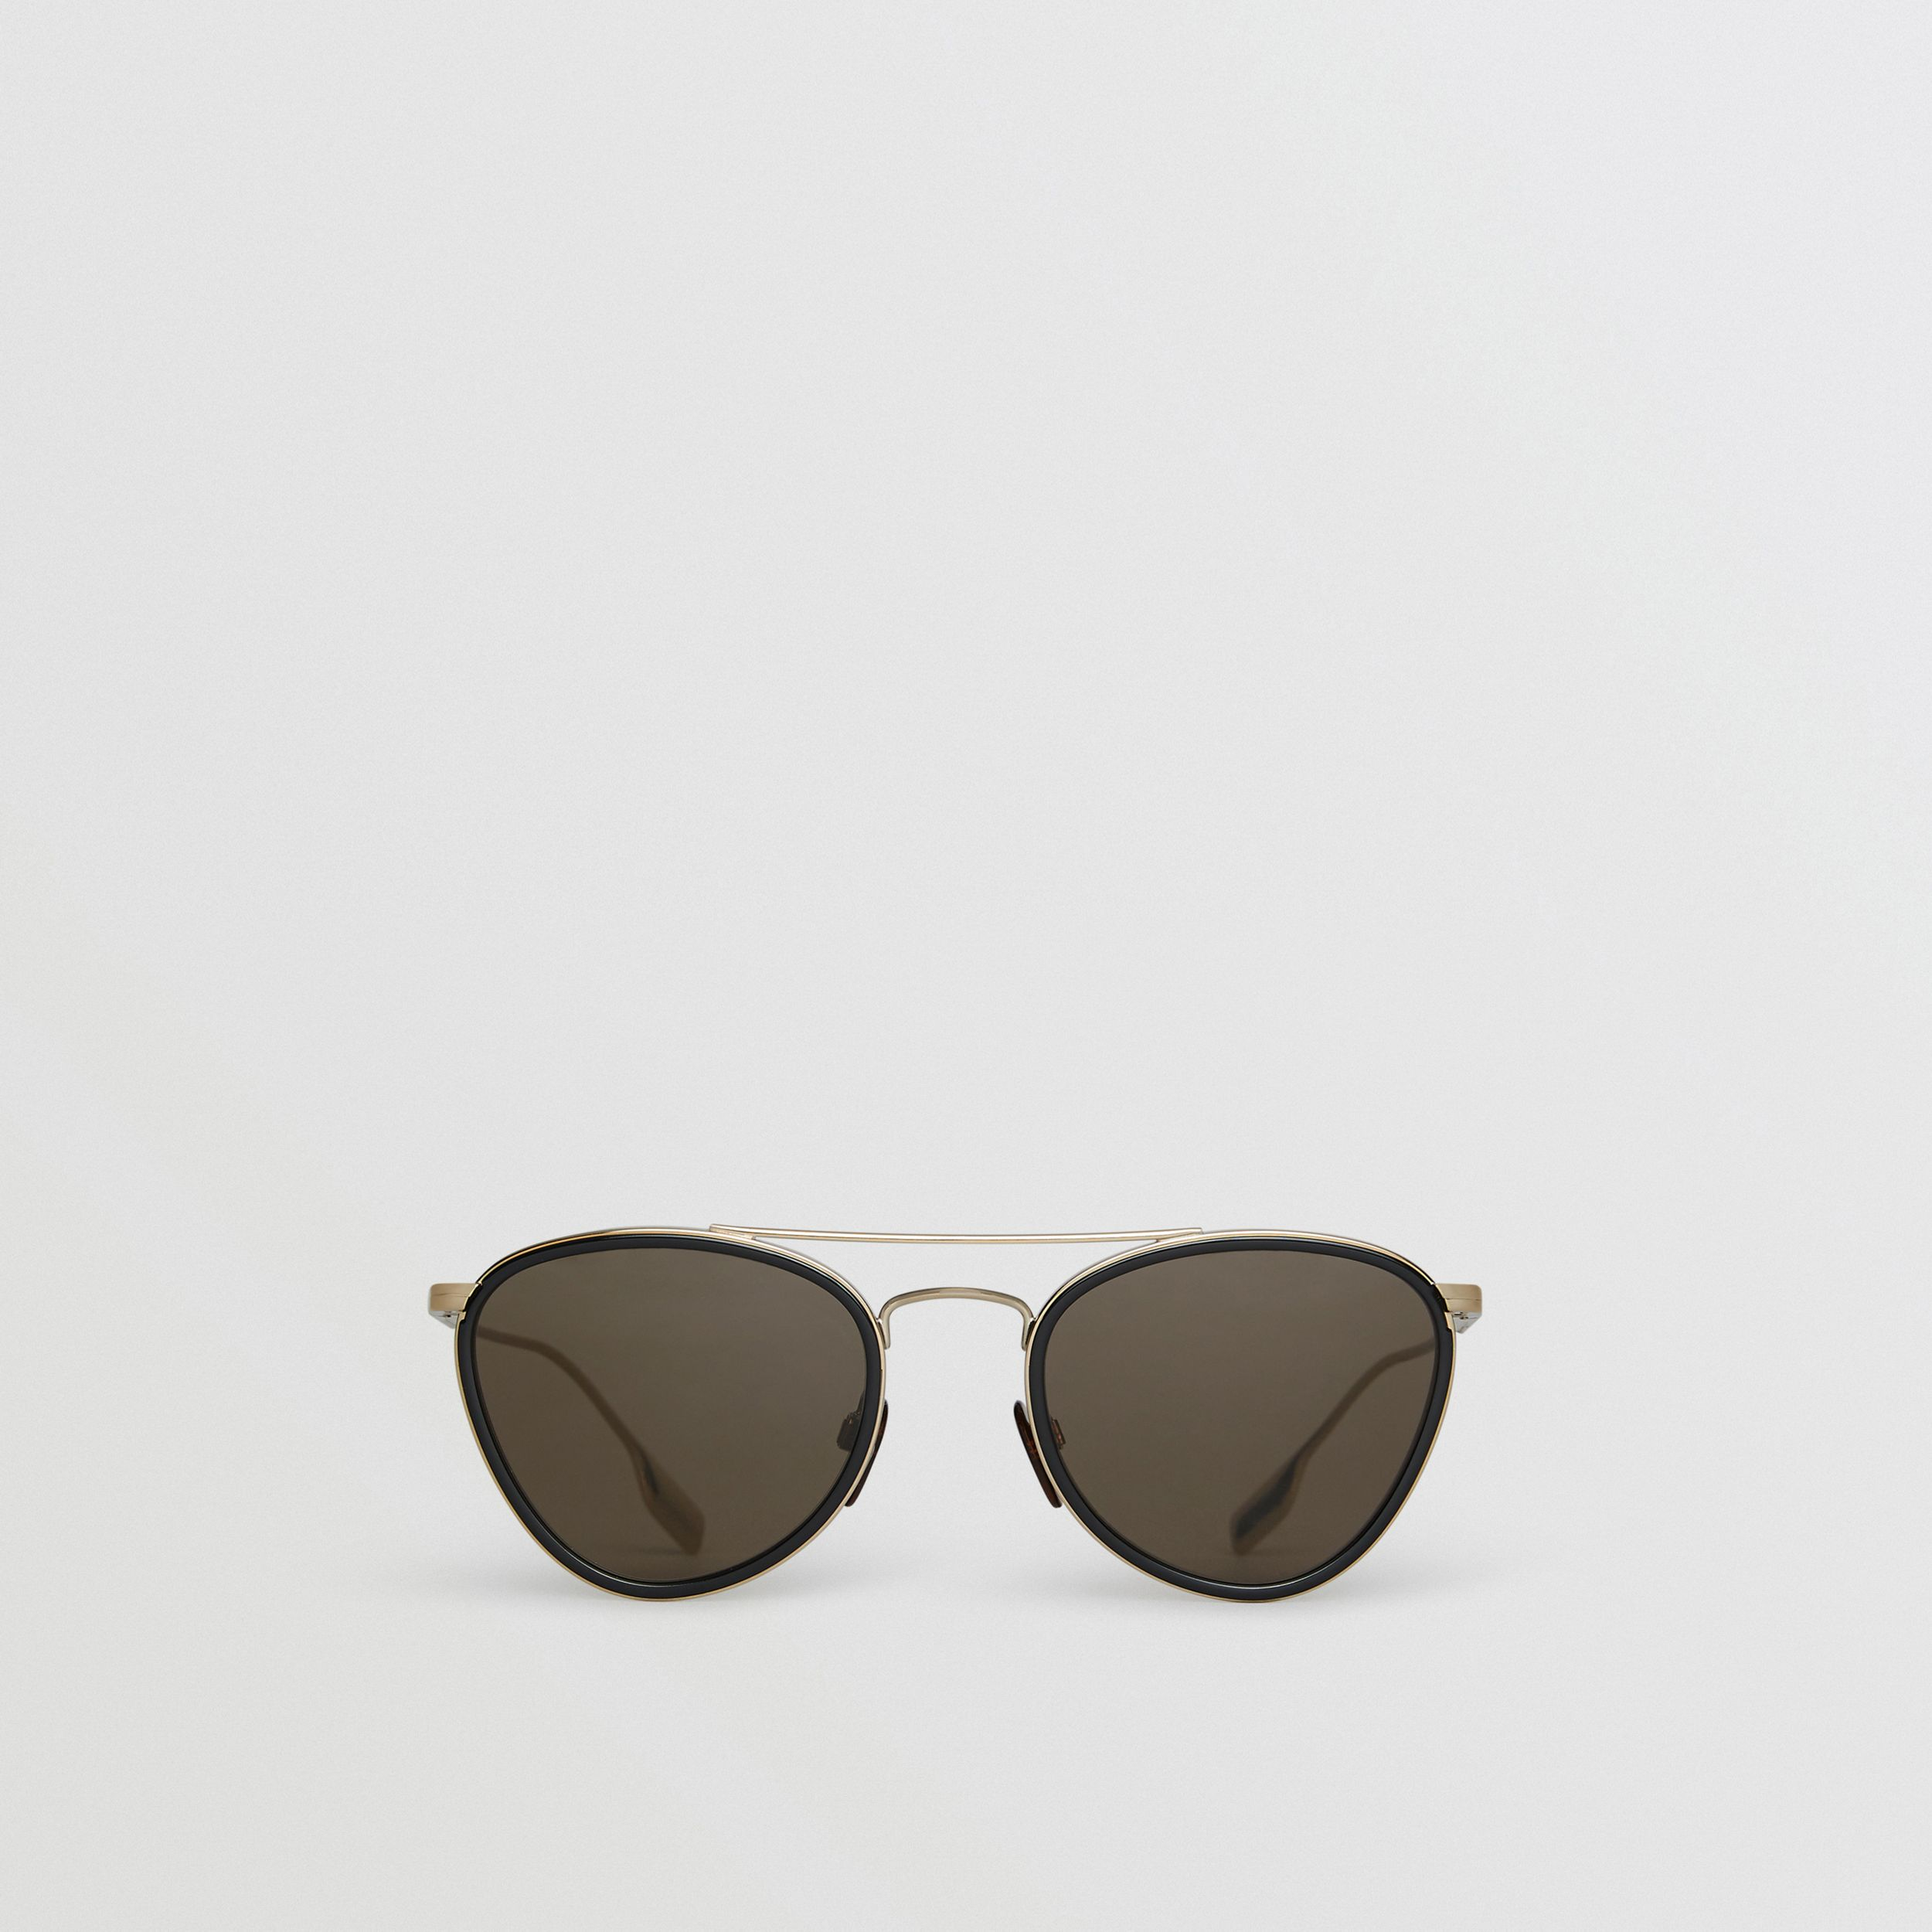 Pilot Sunglasses in Black - Women | Burberry - 1